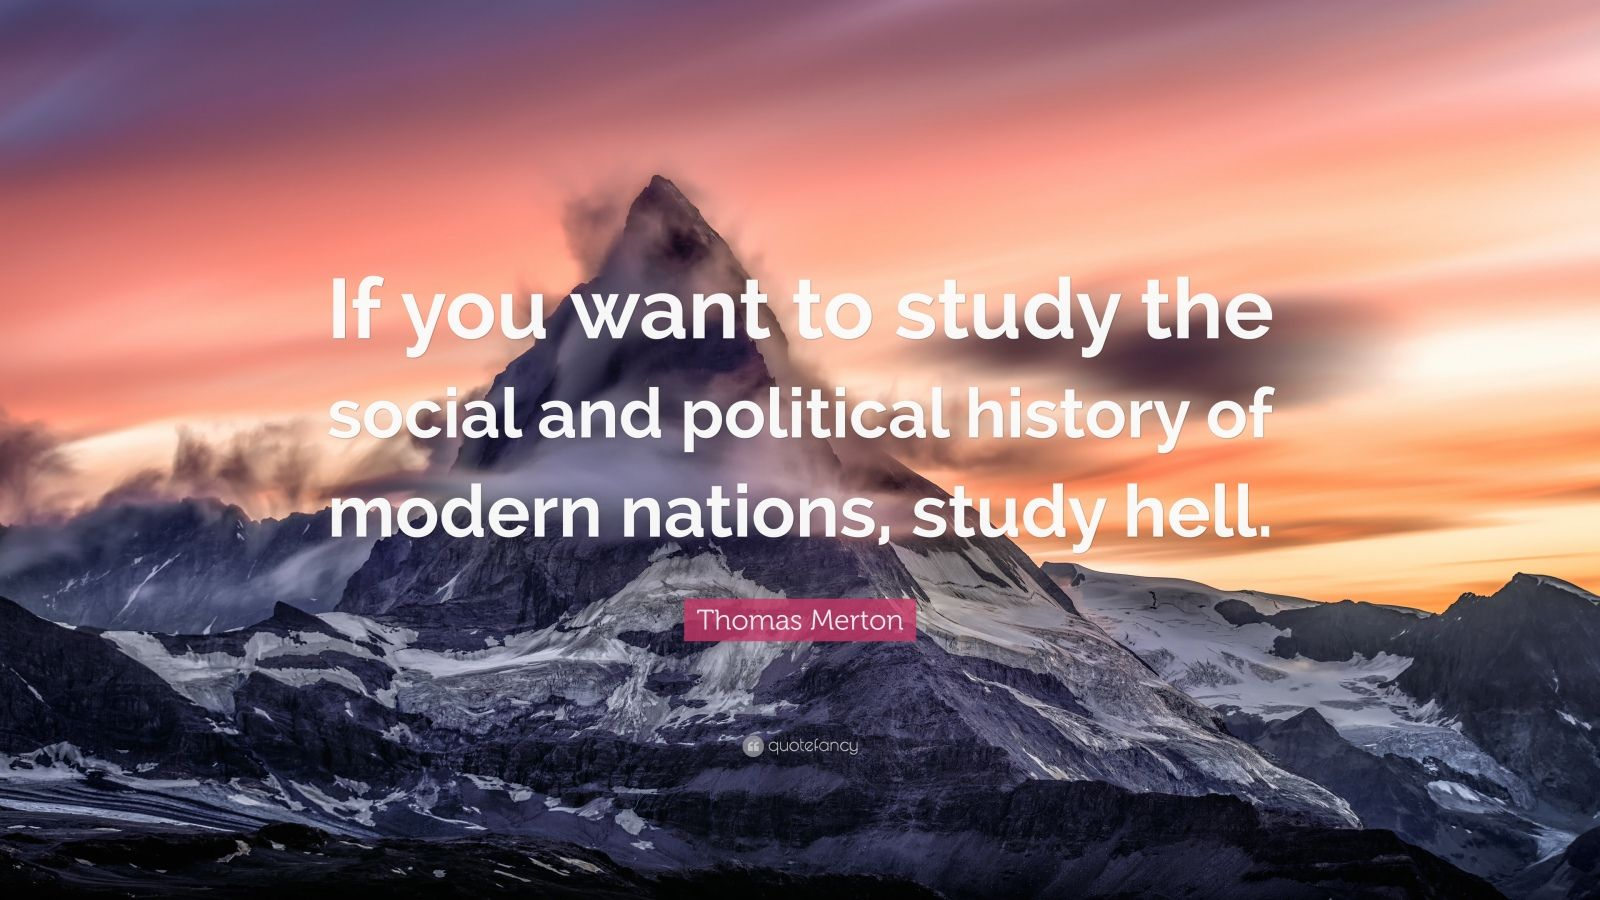 """Thomas Merton Quote: """"If you want to study the social and political history of modern nations, study hell."""""""